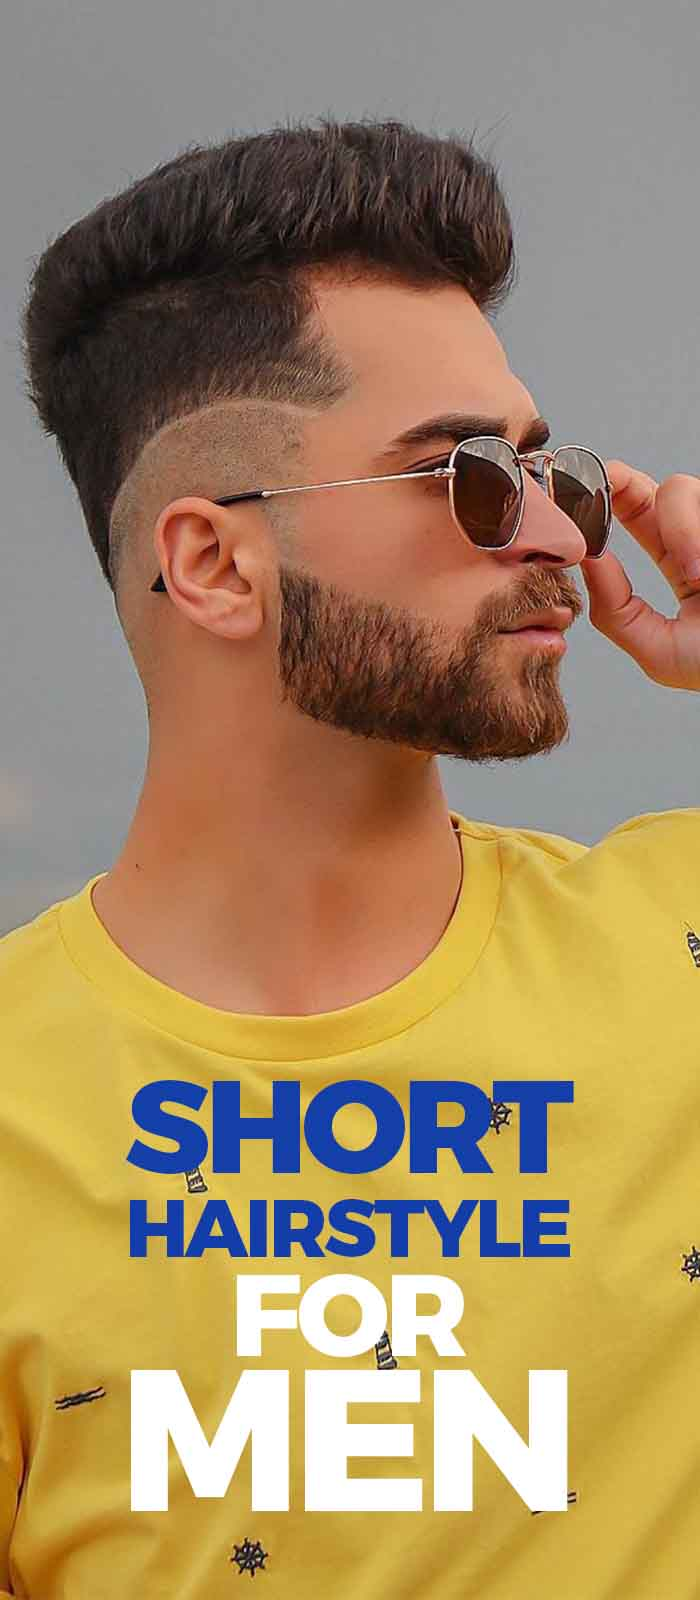 Short Hairstyles For Men 2019!